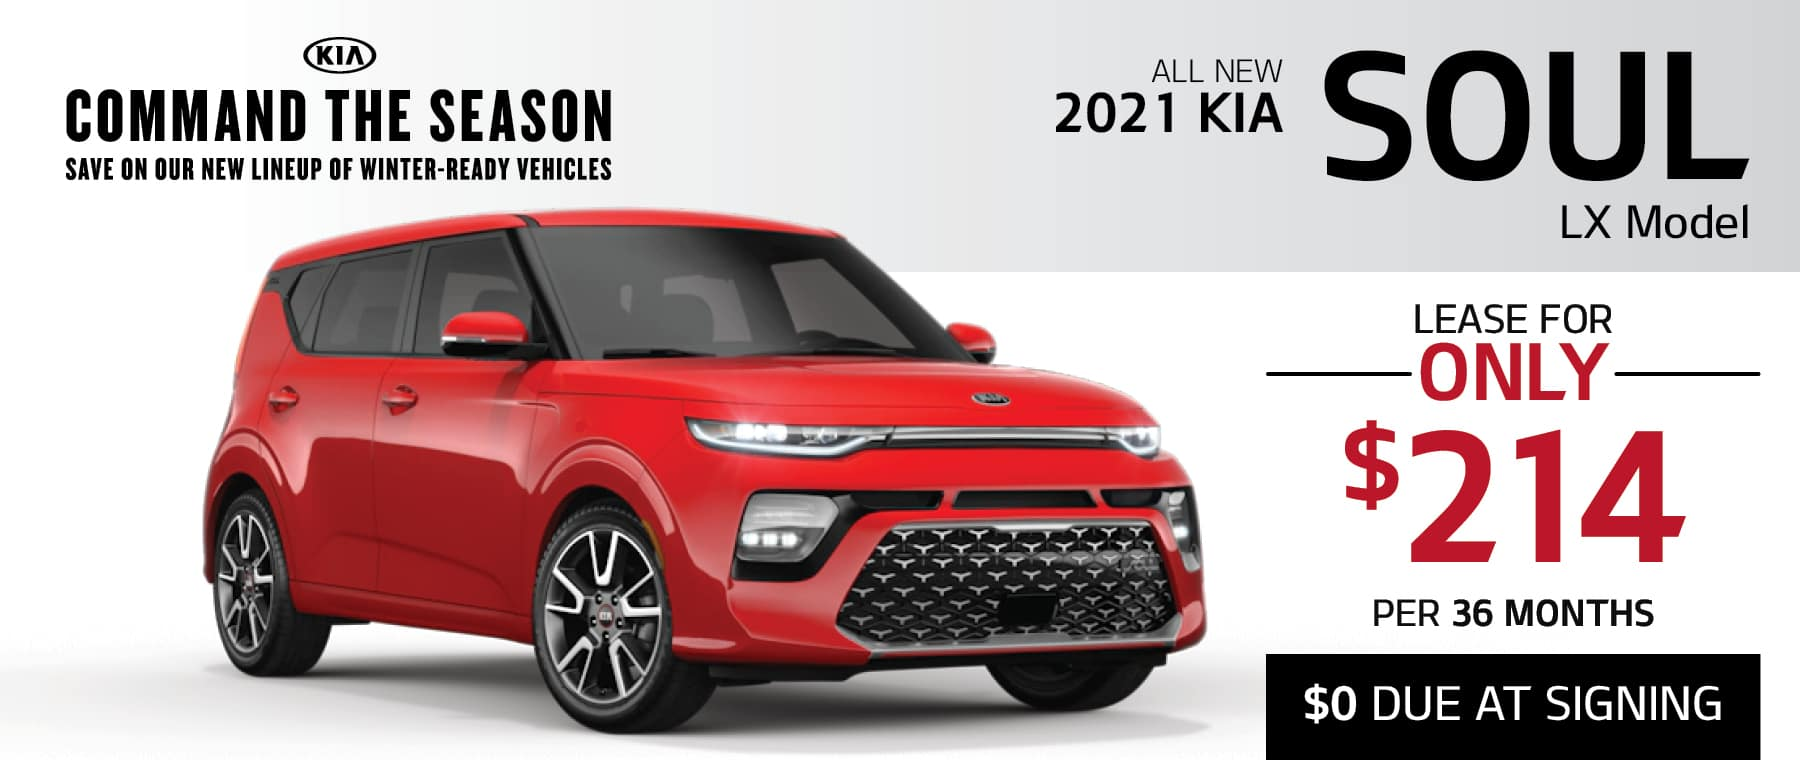 Kia Soul Lease Offer During the Command the Season Sales Event at Smail Kia